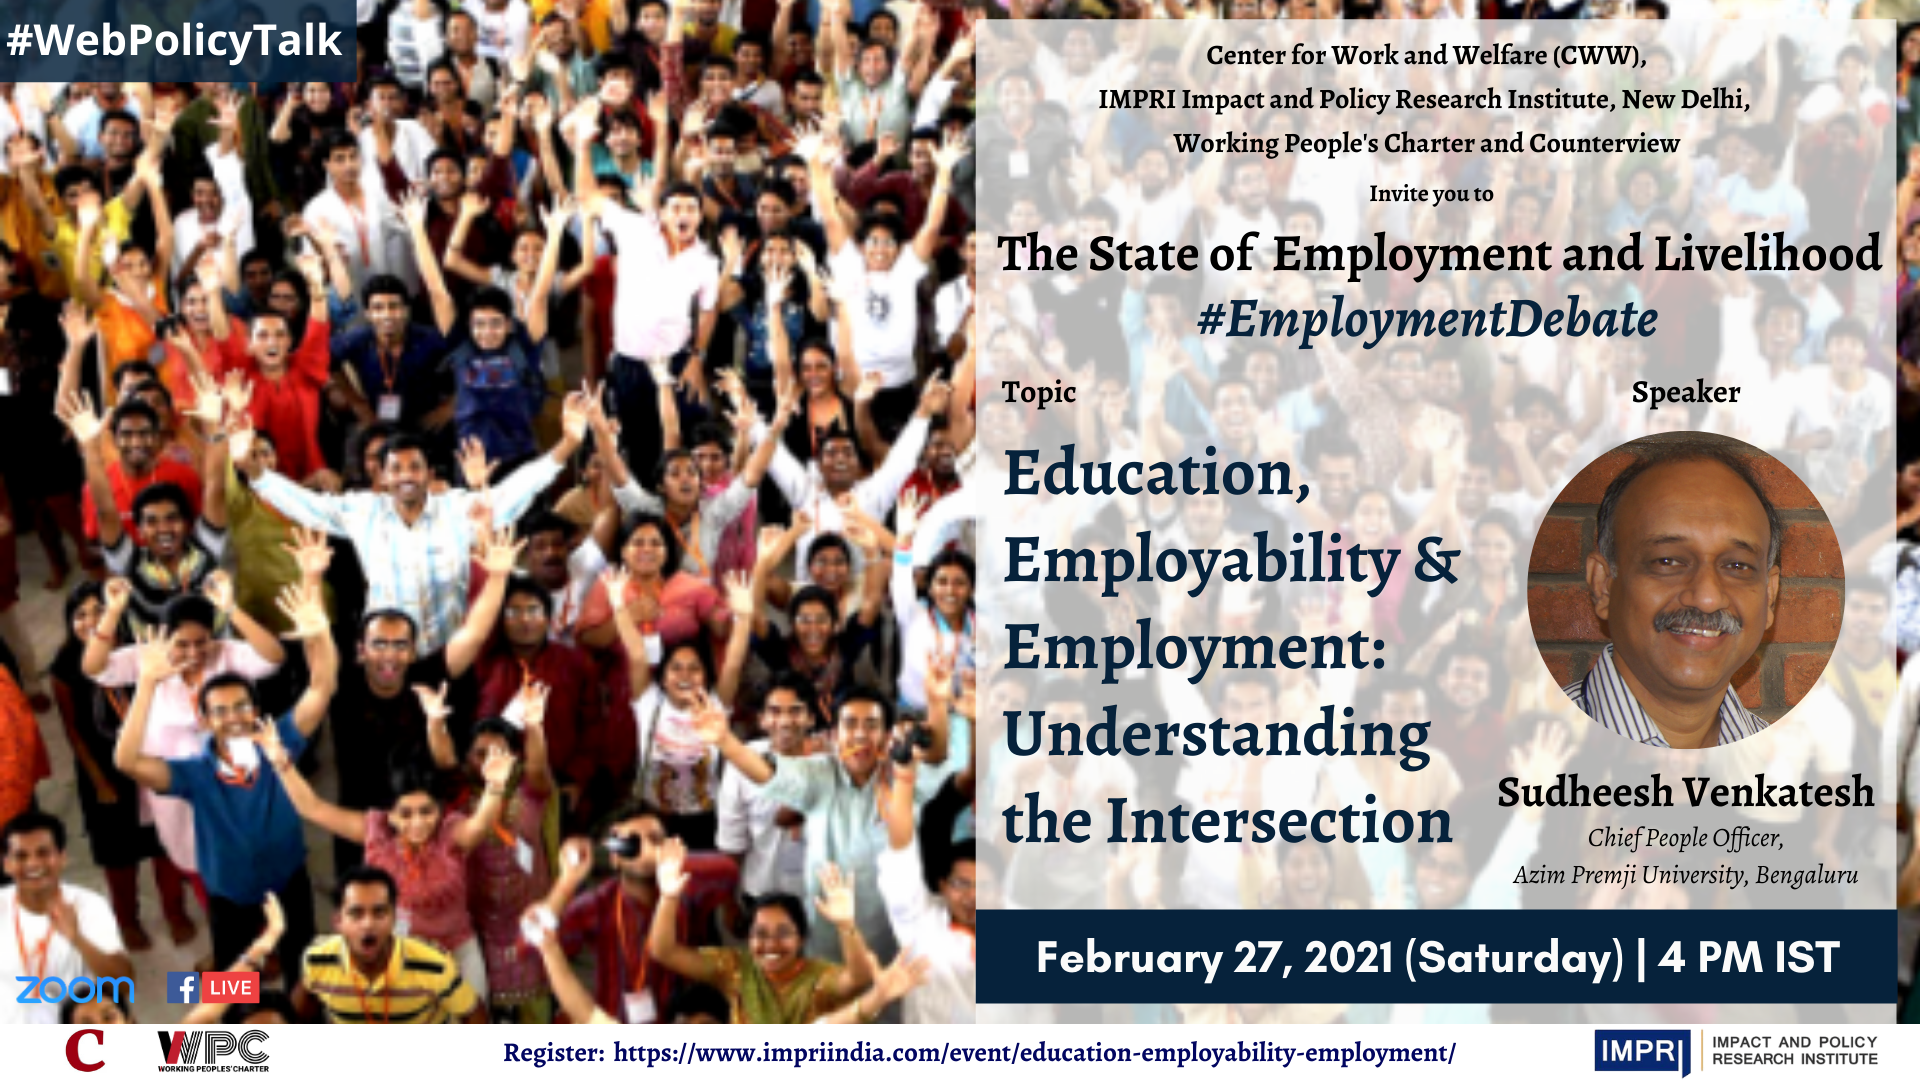 Education, Employability & Employment: Understanding the Intersection